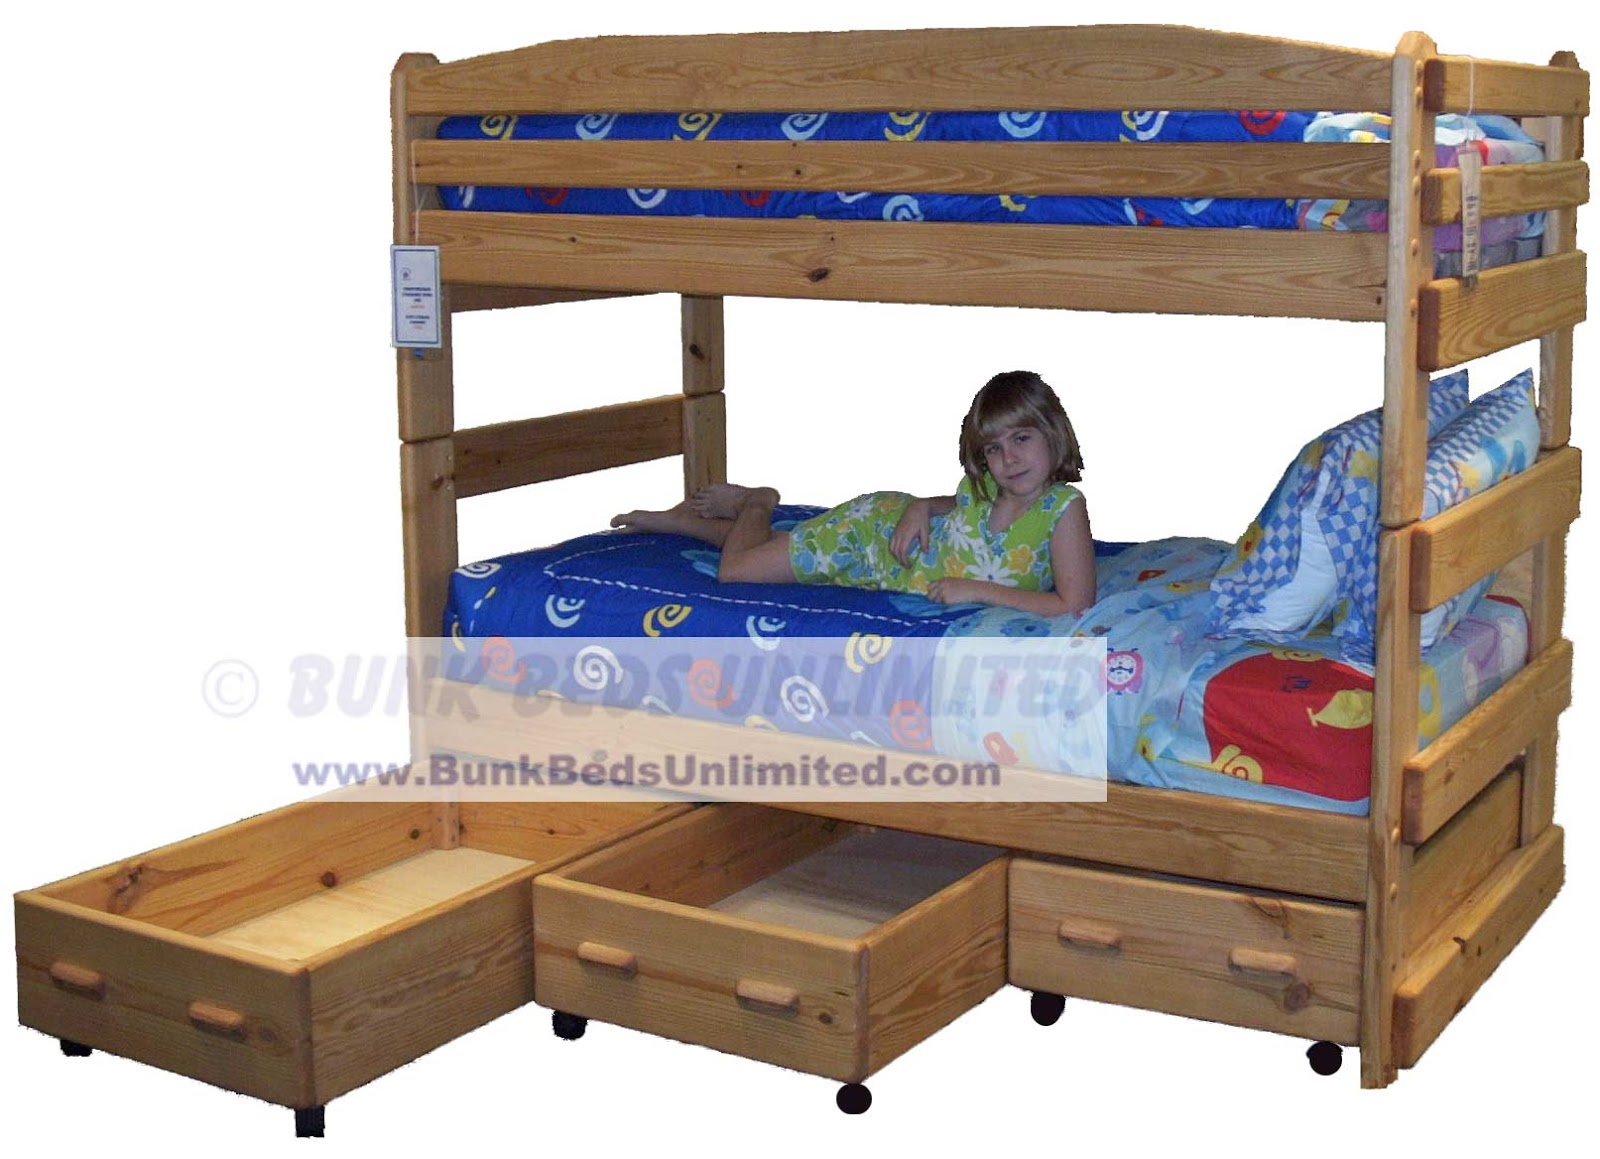 Bunk Beds – we have plans for severaldifferent bunk beds: standard ...